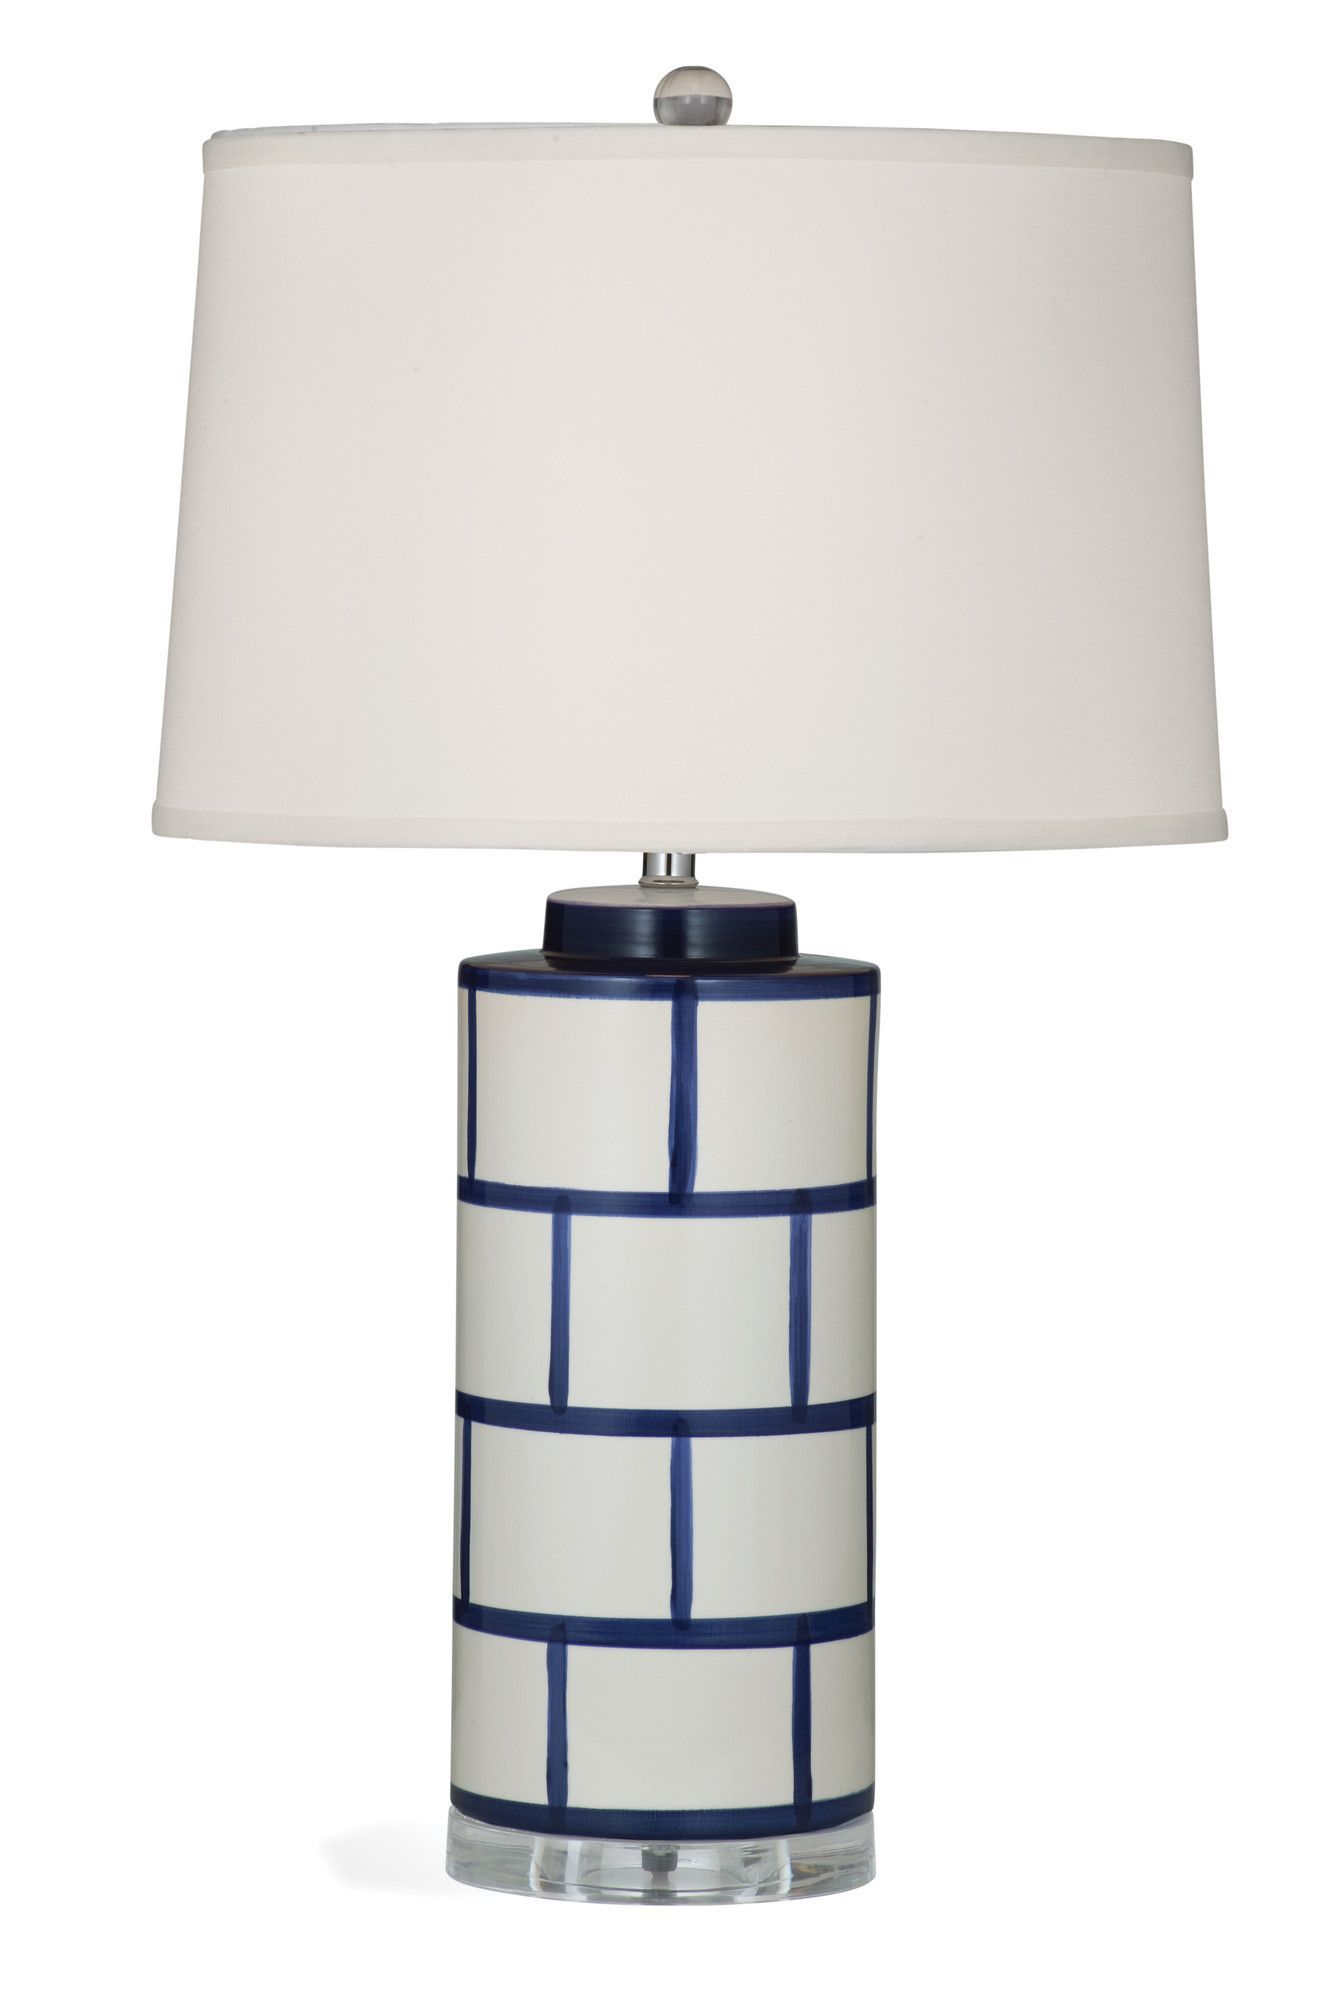 "Fugate Elaina 29"" Table Lamp"